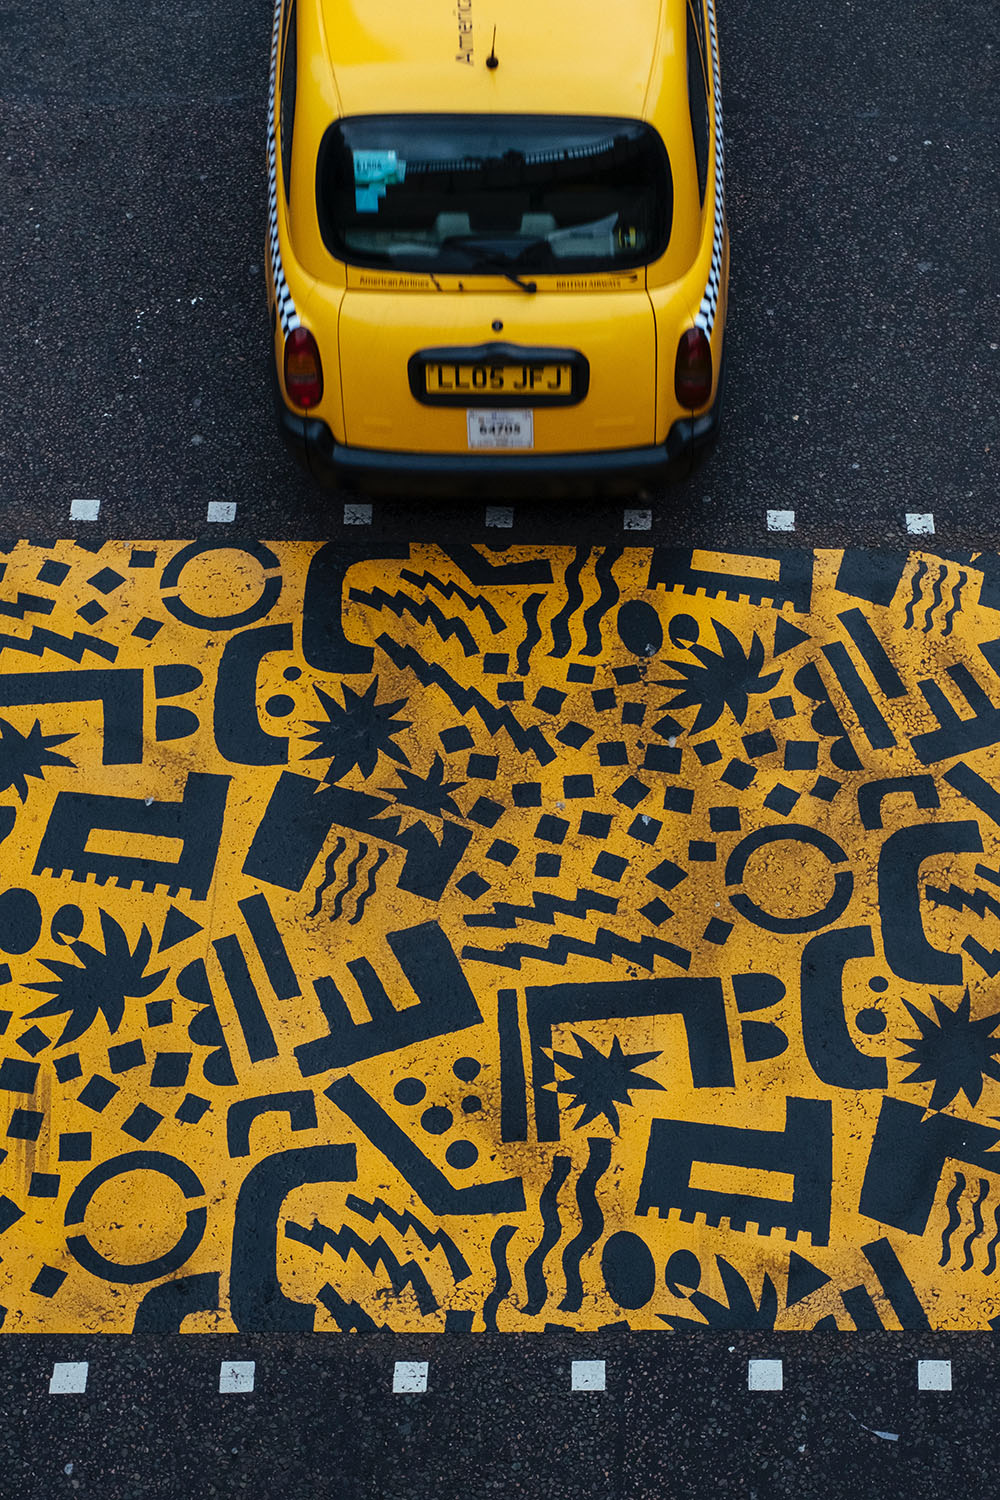 A taxi in London. Photo Credit: Lee Cartledge